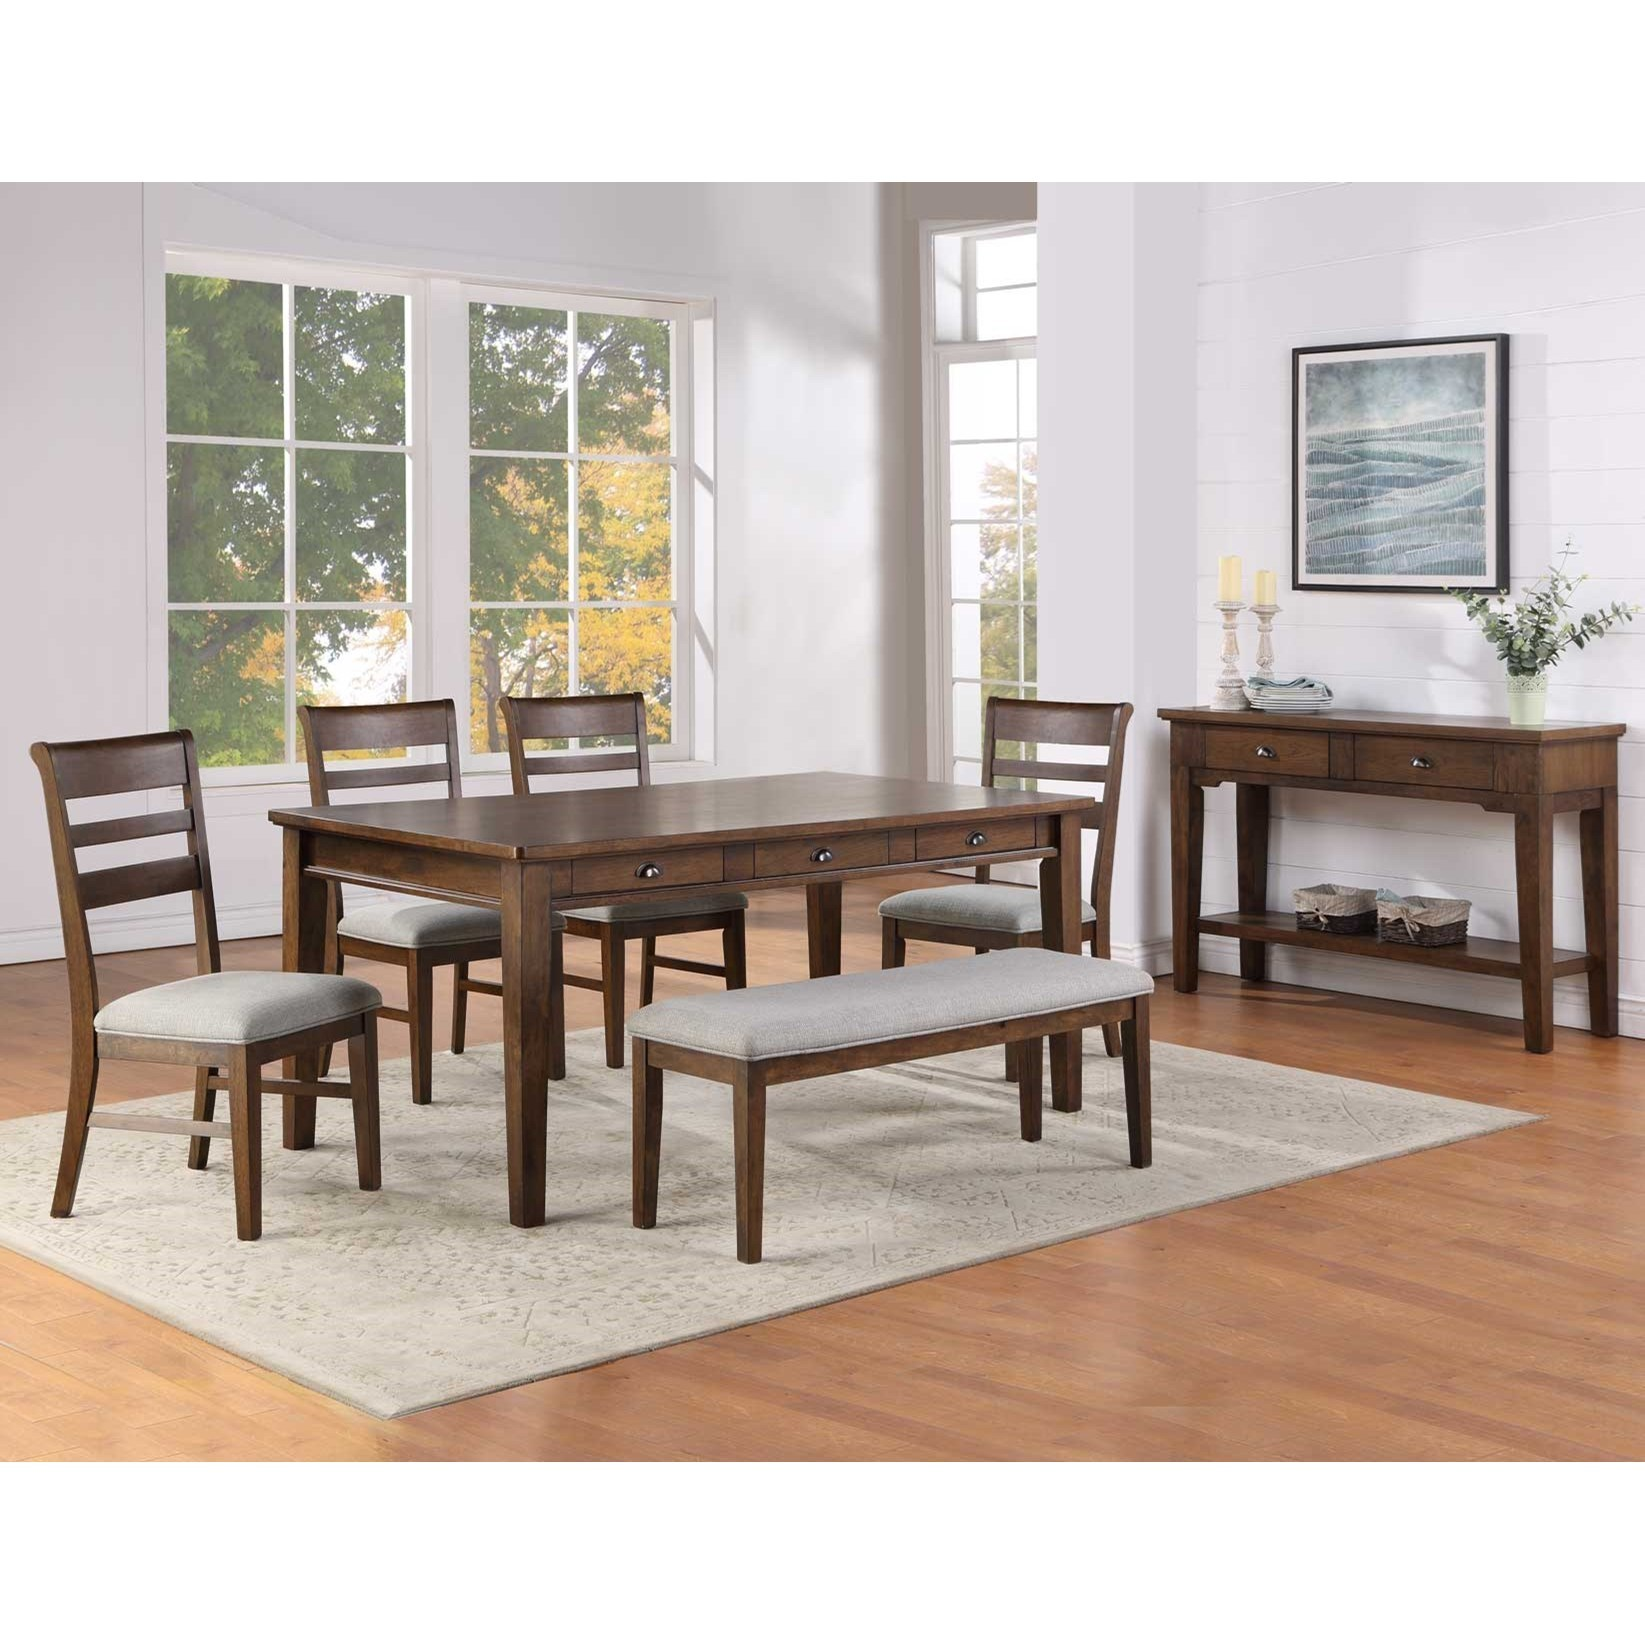 Ora Dining Room Group by Steve Silver at Northeast Factory Direct